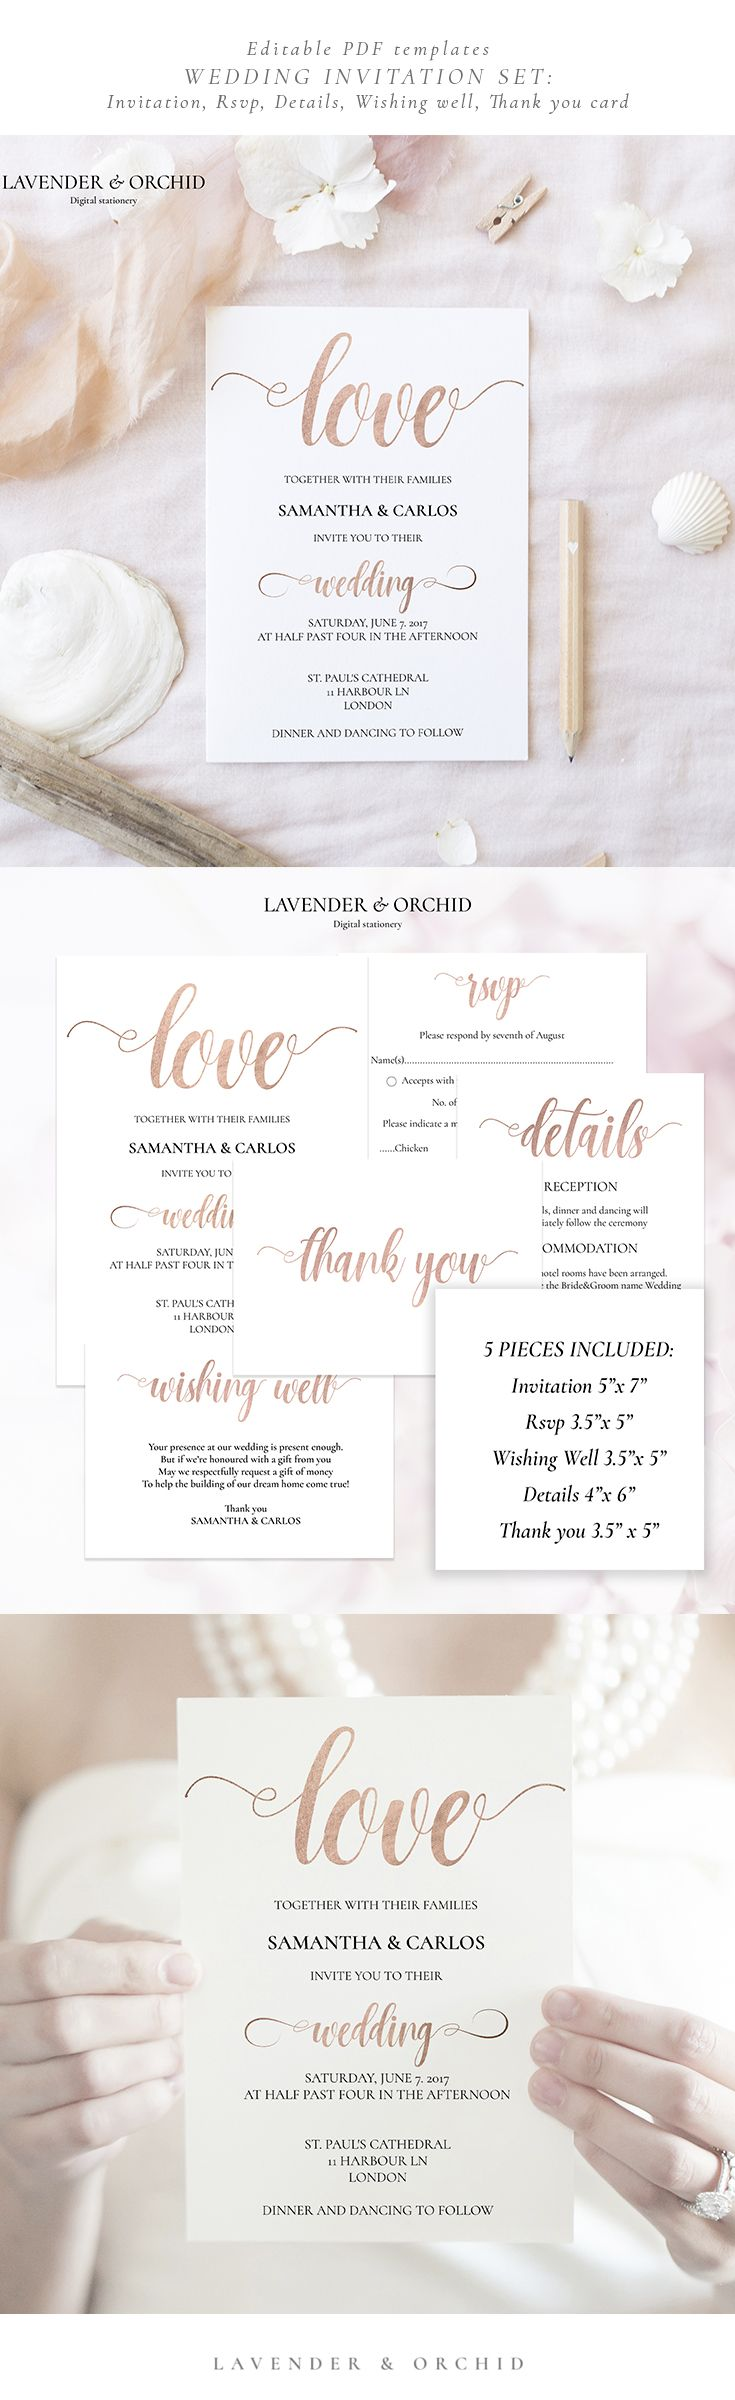 Wedding Invitation Set - editable PDF template. Create your own stunning Wedding Invitation at home!  Our quick and easy-to-use templates are perfect for the DIY couples on a budget.